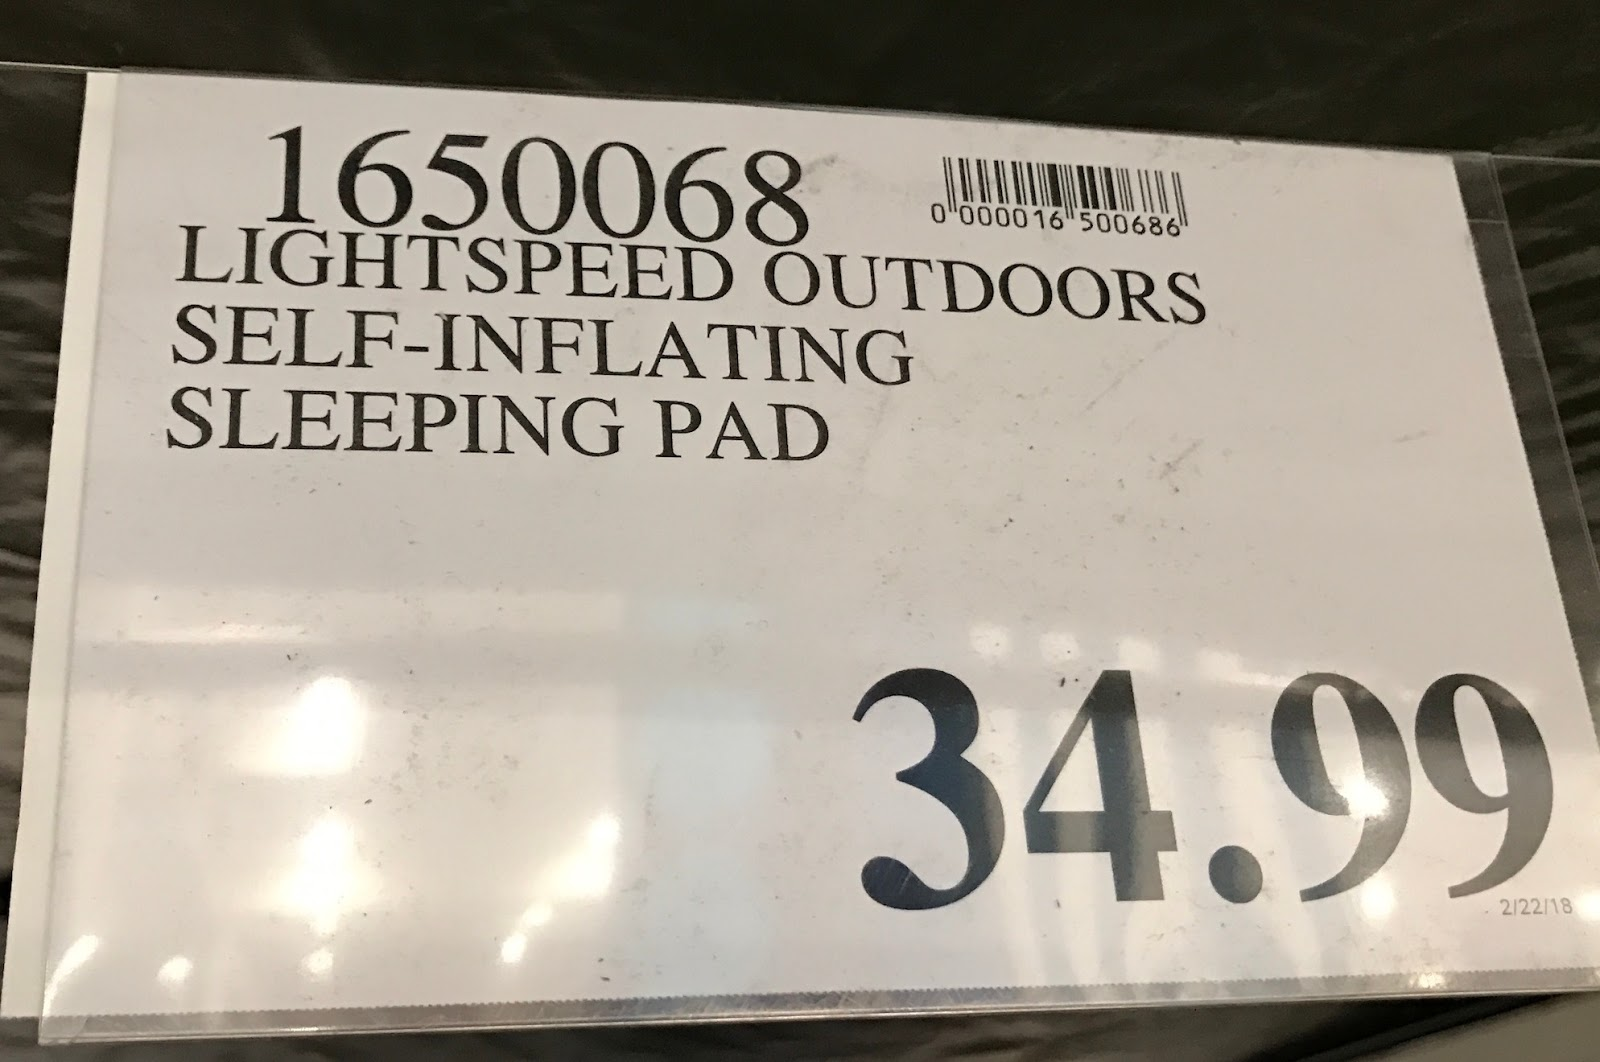 Deal for the Lightspeed Self-Inflating Sleep Pad with FlexForm at Costco